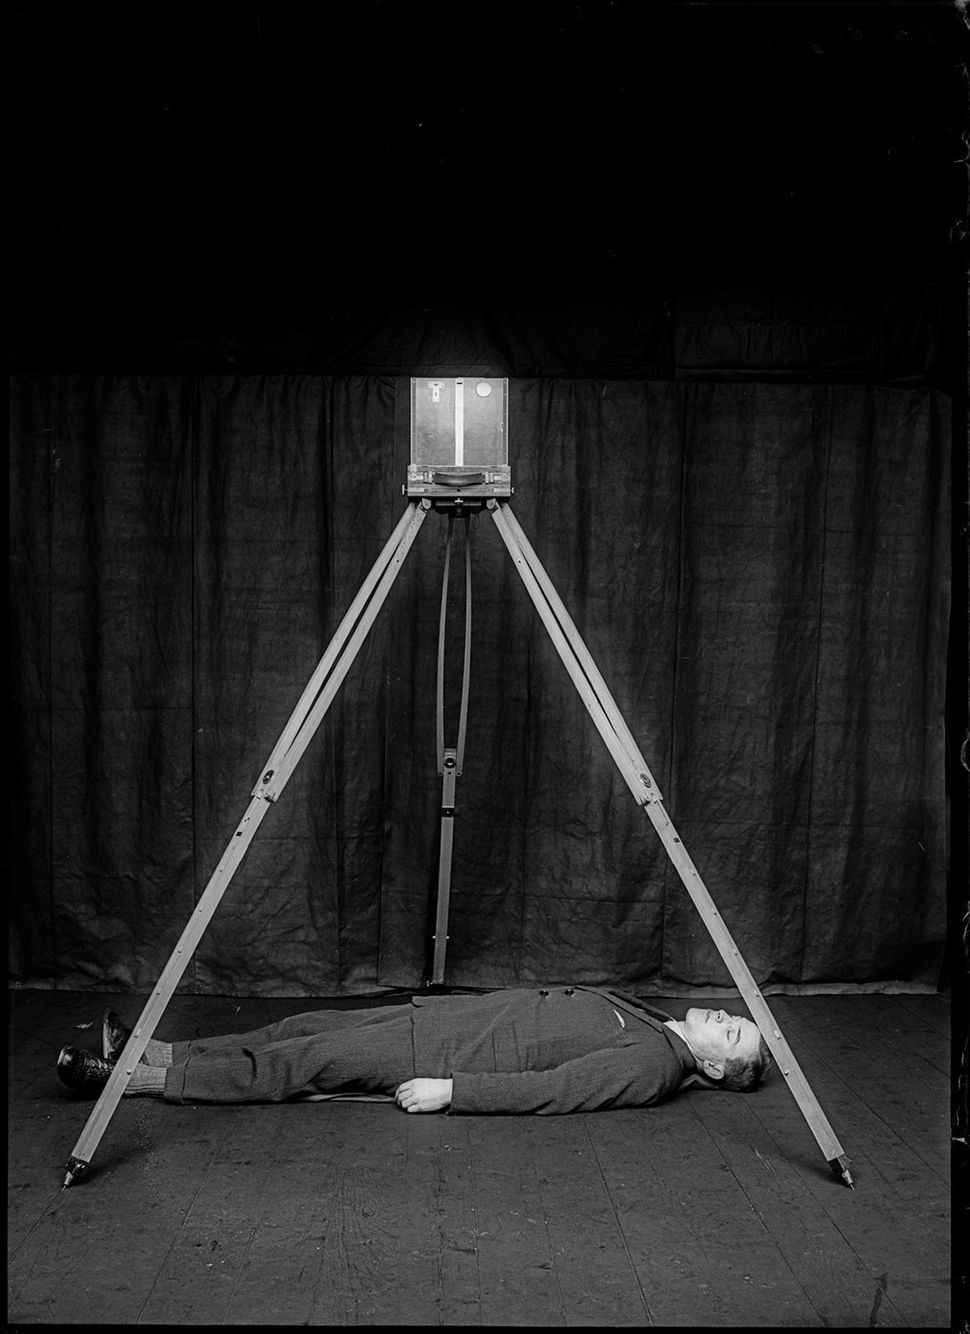 Demonstrative image of Bertillon's forensic photographic approach, with a body simulating a corpse and the camera in position